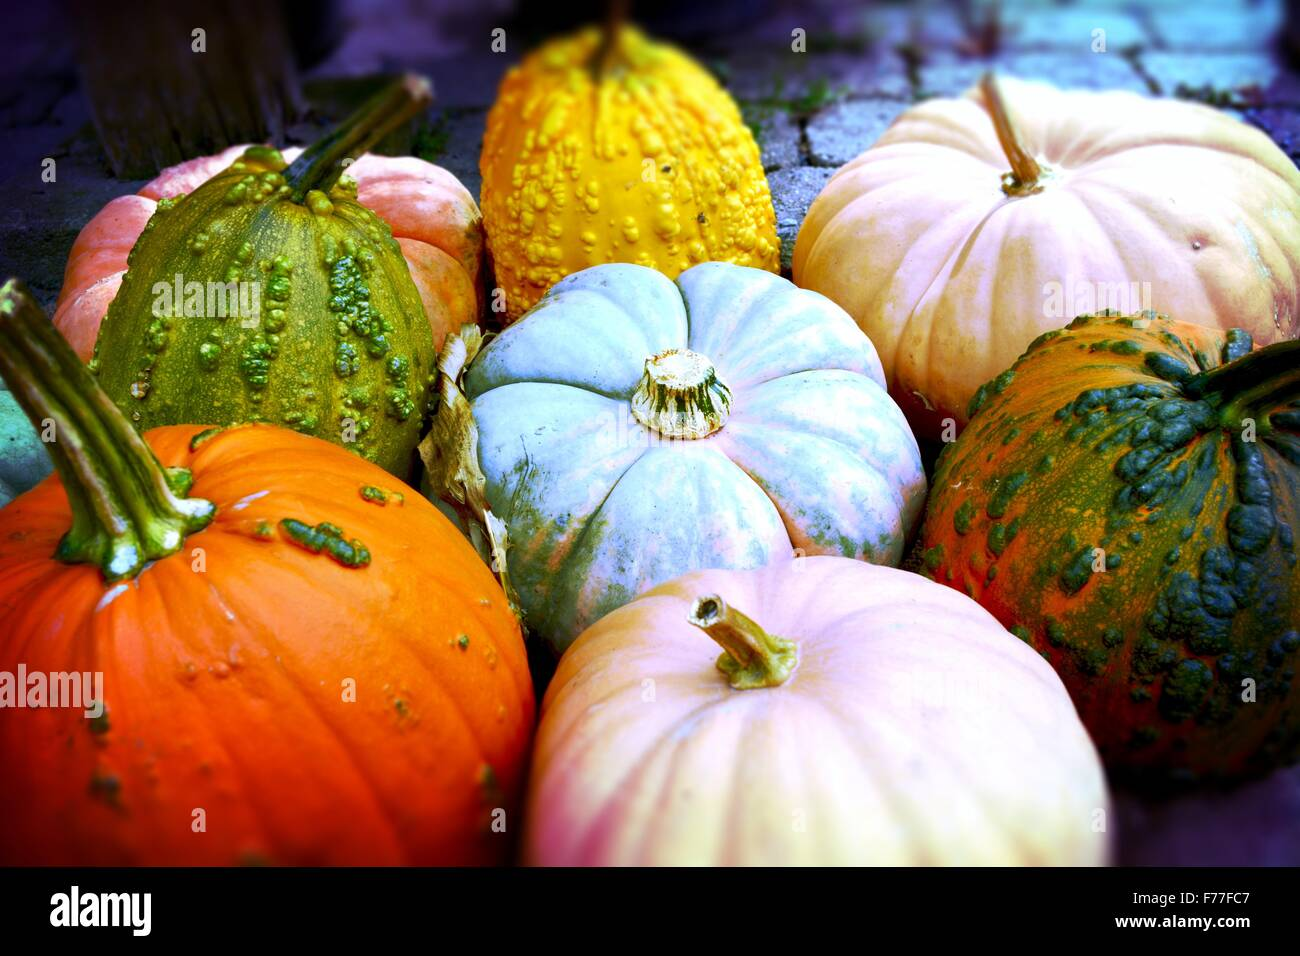 Pumpkins! Pile of vibrantly colored pumpkins ready for the picking! - Stock Image